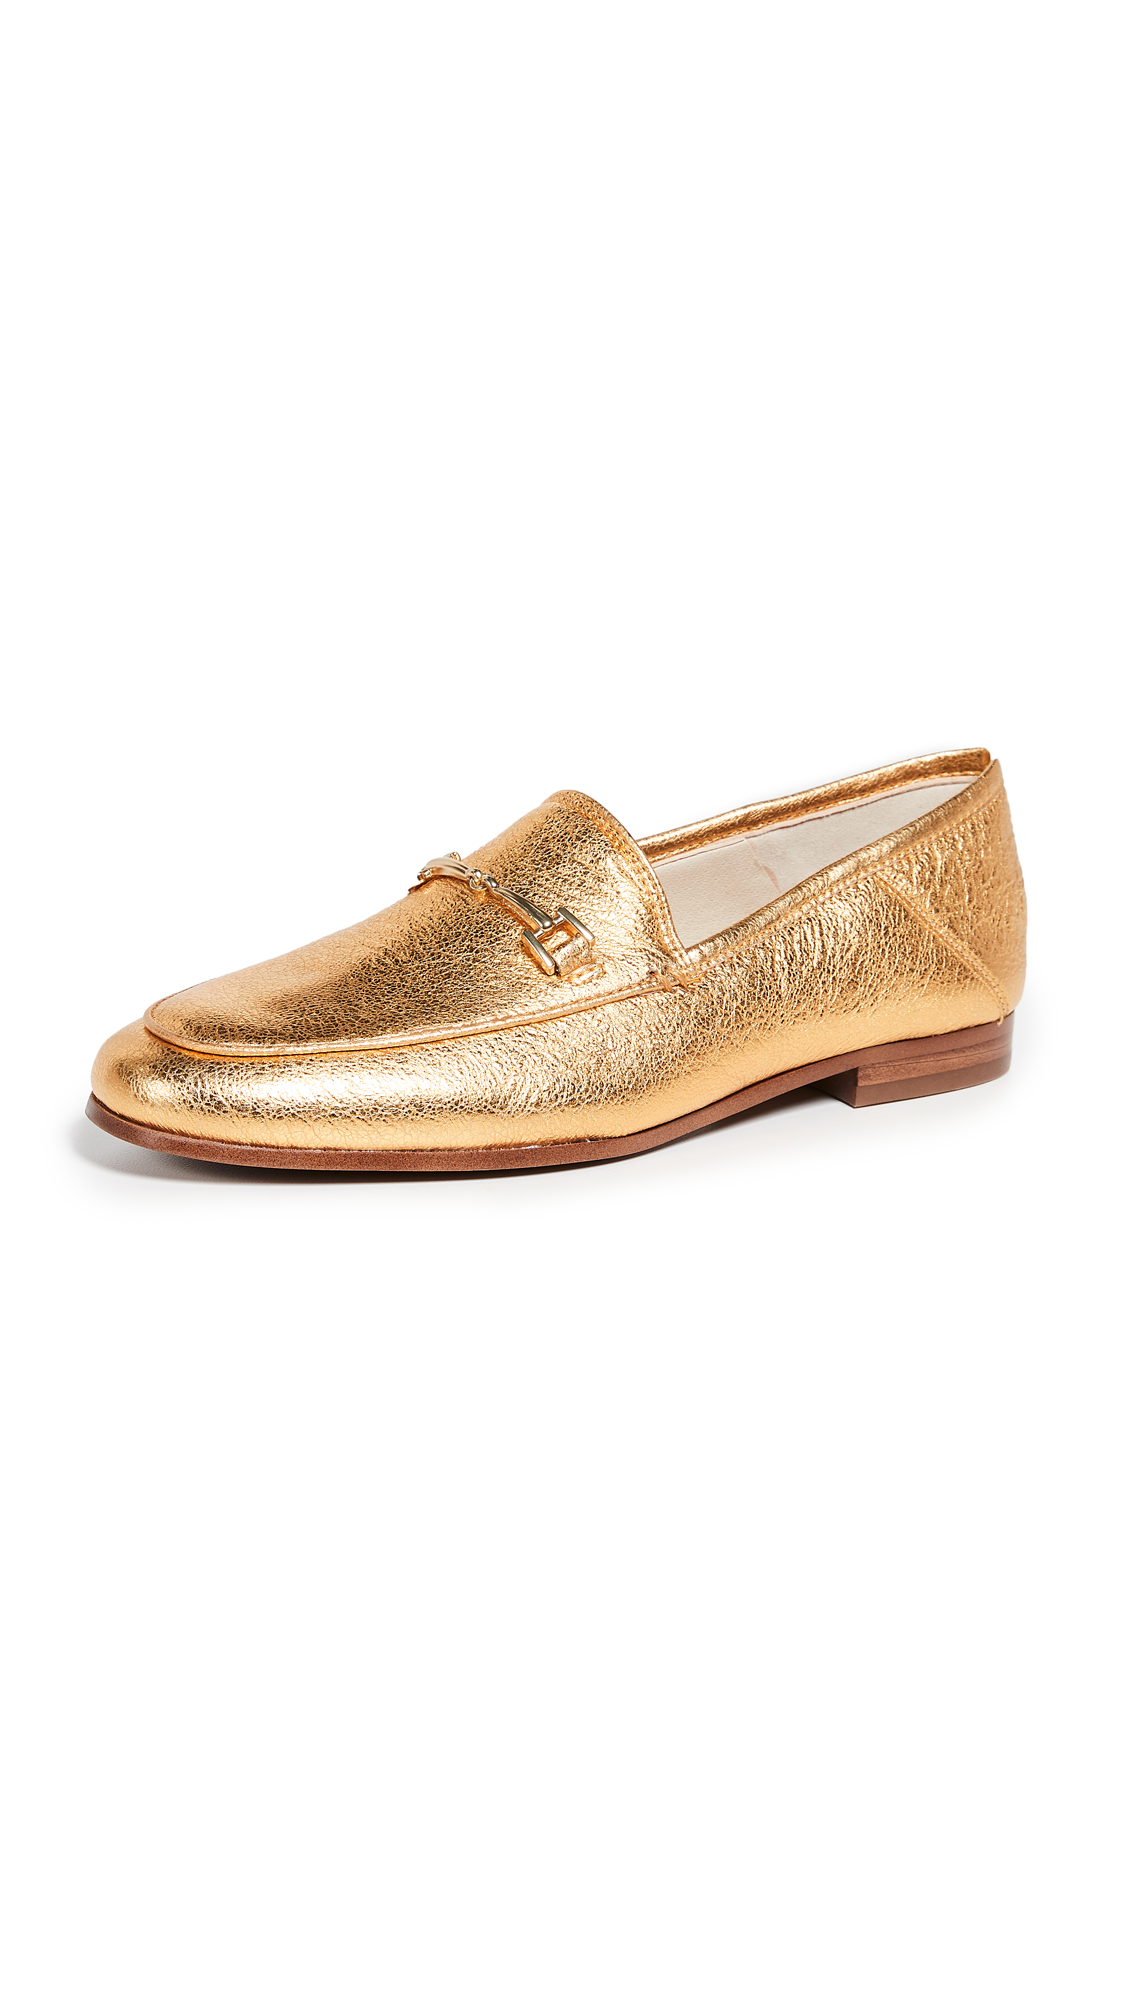 Sam Edelman Loraine Loafers - Exotic Gold